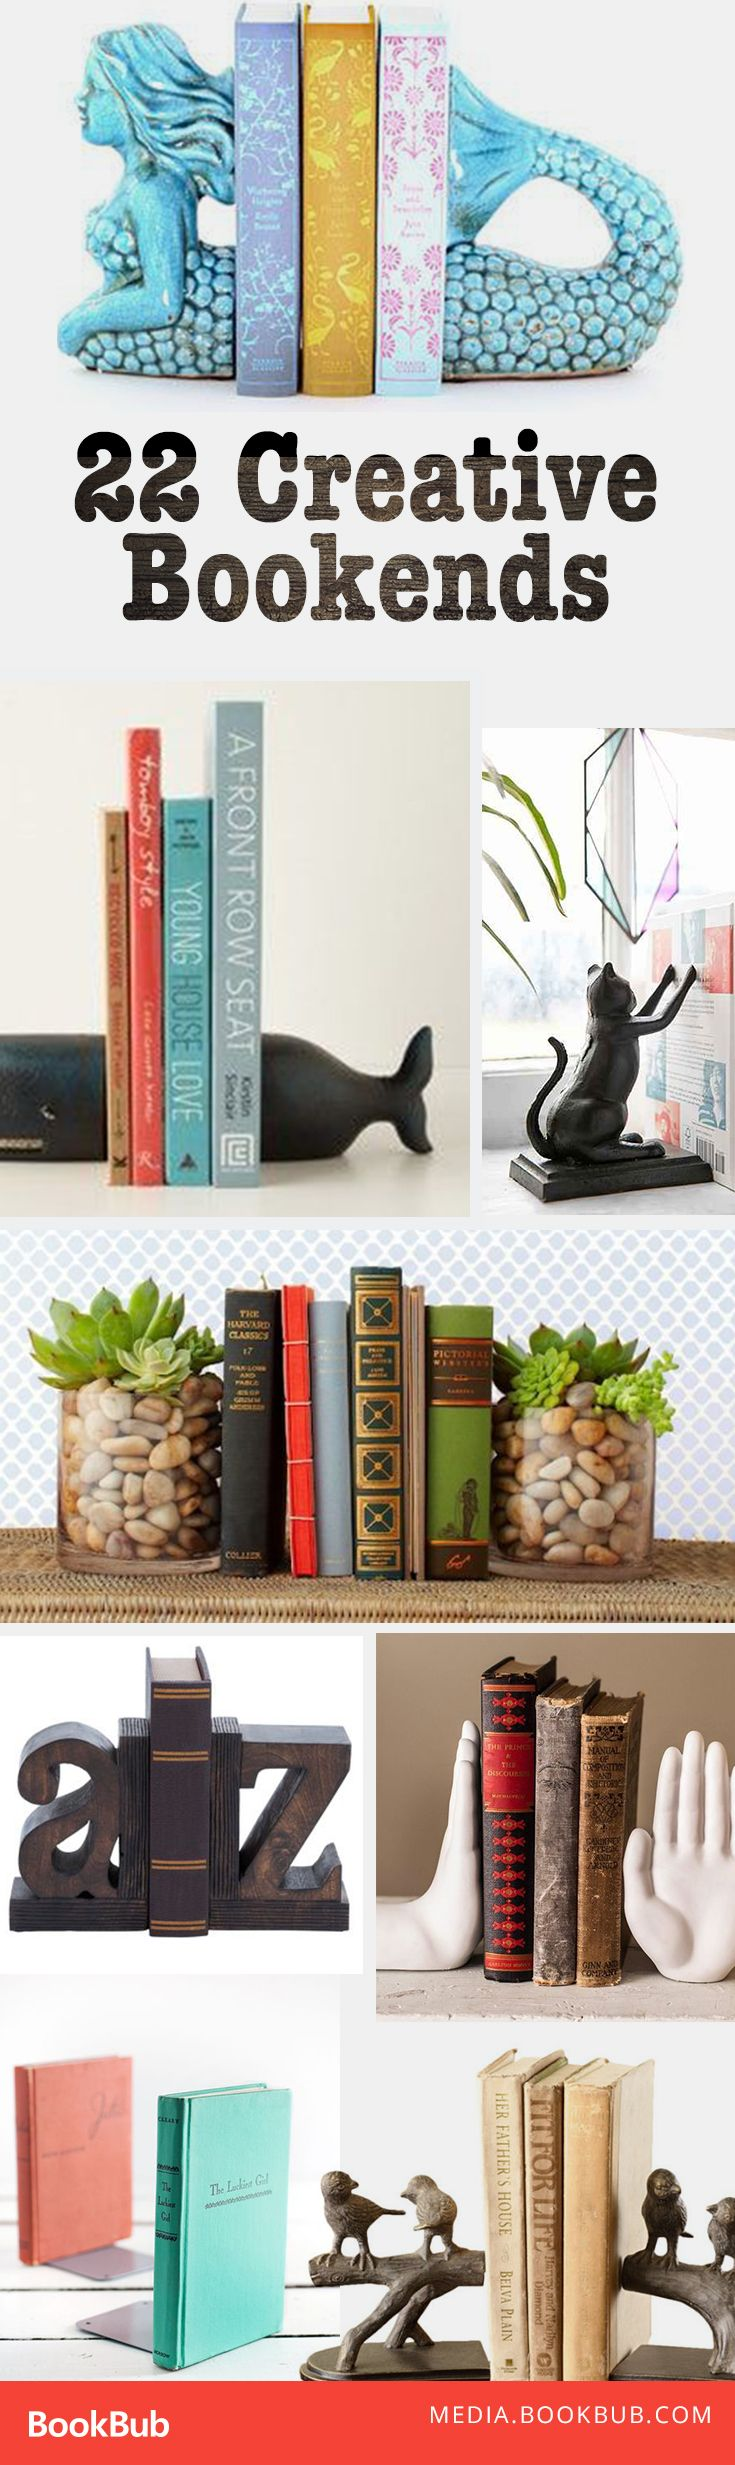 22 creative book ends. These would make perfect gifts for bookworms, or a great decorating idea to help style your bookshelf!